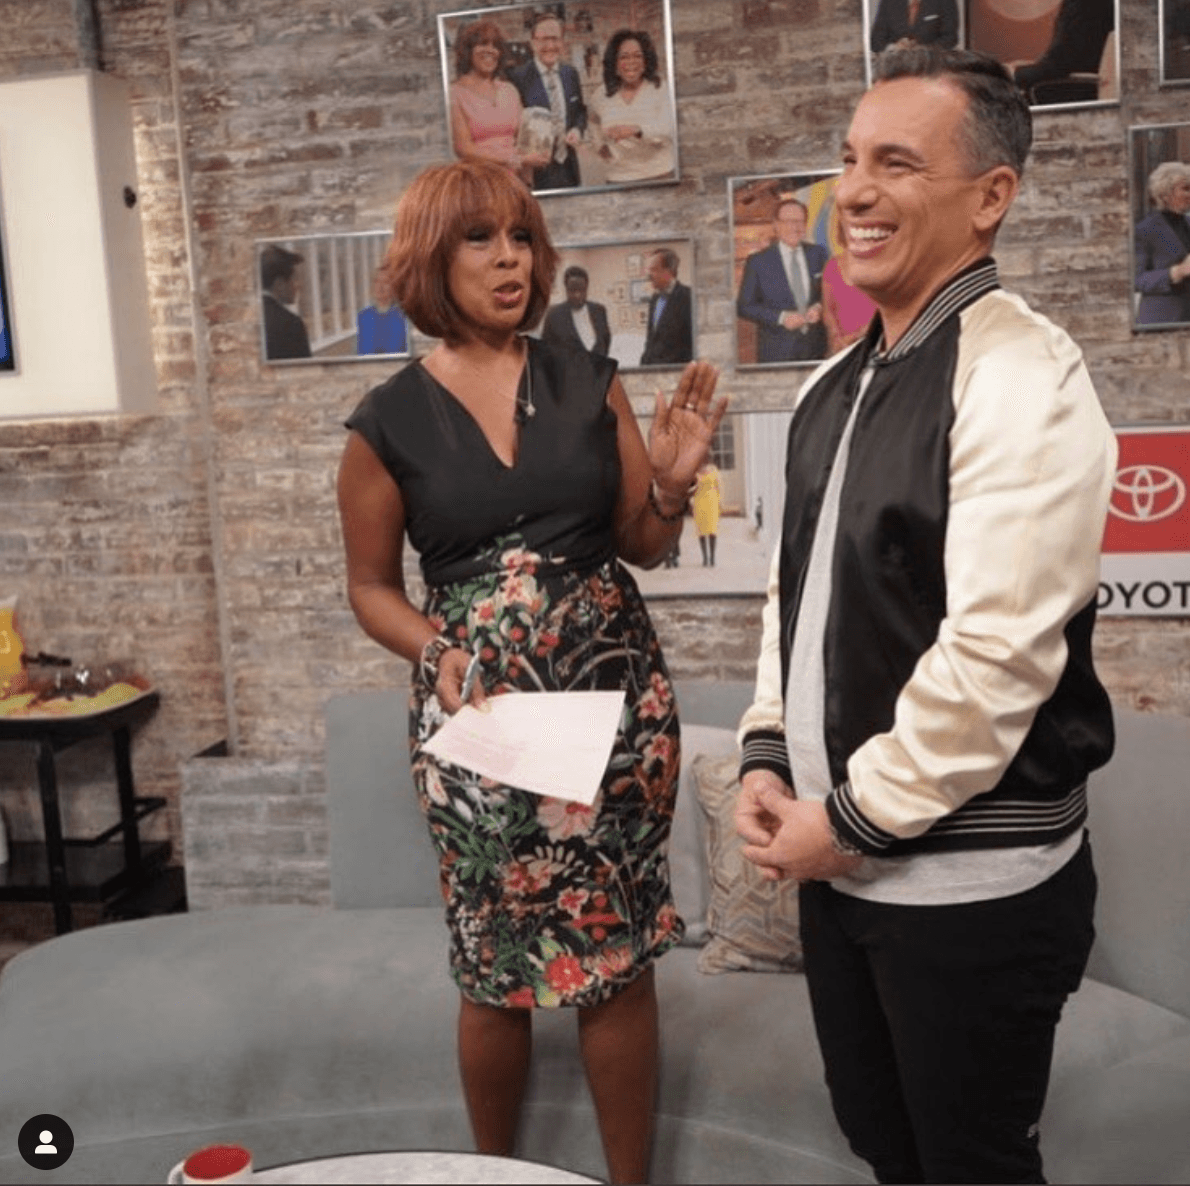 Sebastian Maniscalco hosting MTV Music Awards 2019 - Net